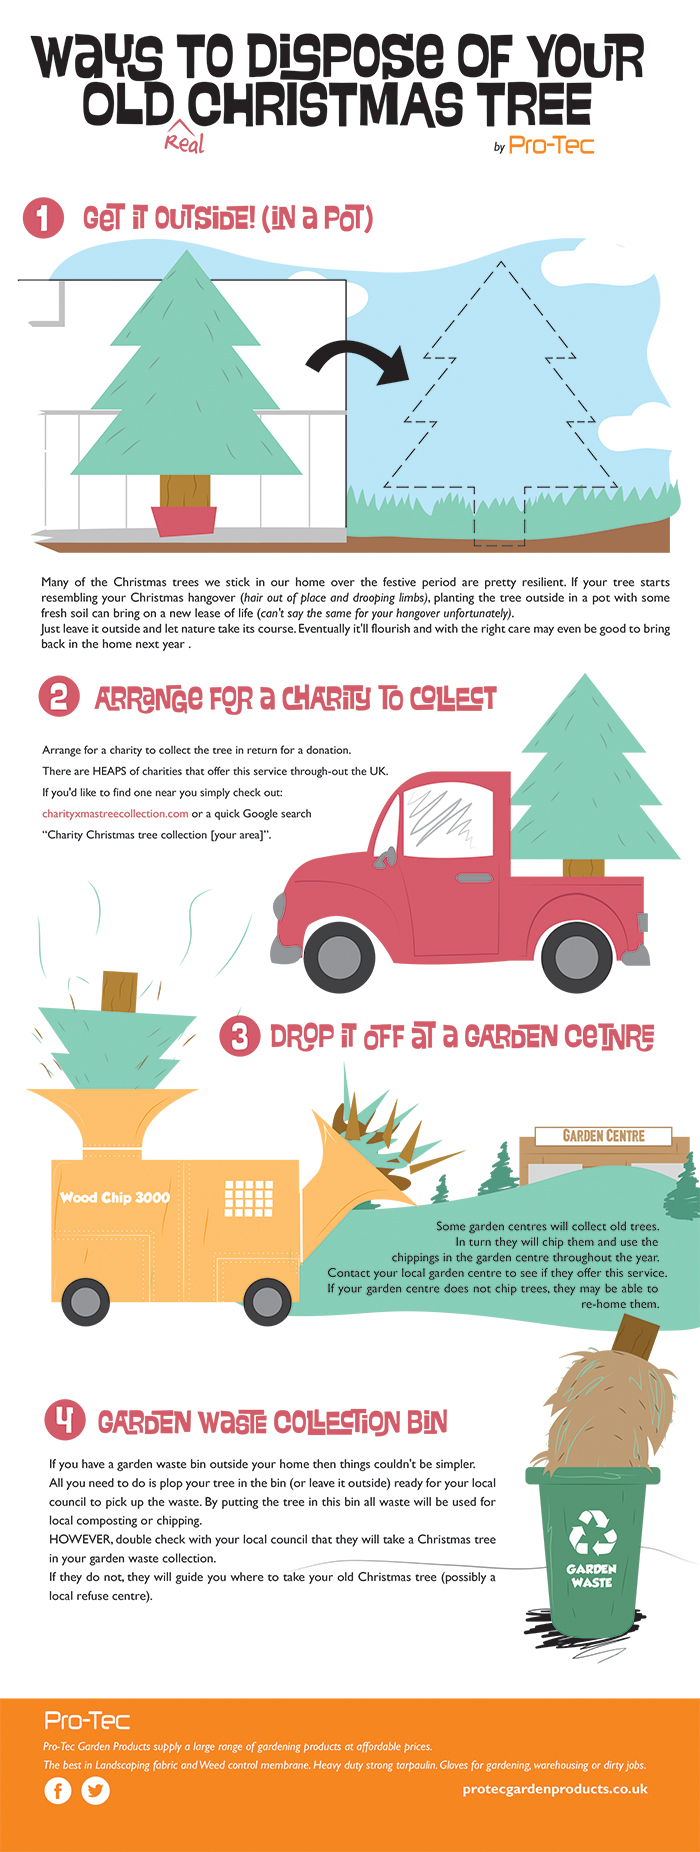 How To Dispose Of Your Old Christmas Tree Tips From Pro Tec